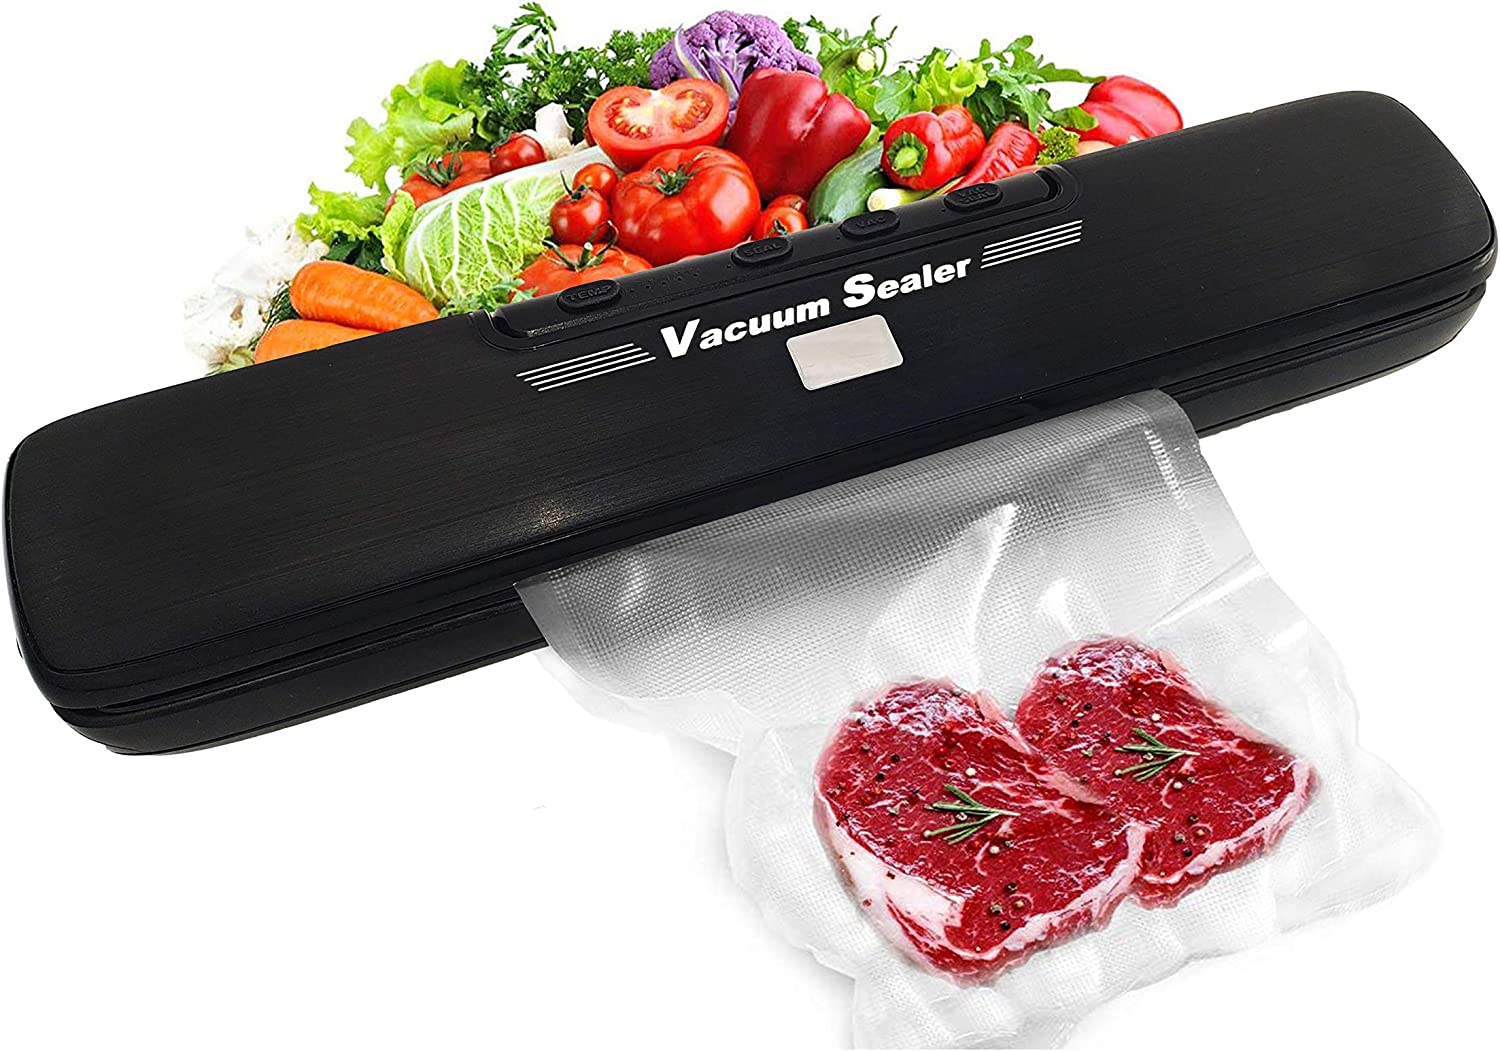 Vacuum Sealer Machine, Multifunction Automatic Air Food Sealing Saver Systerm for Food Preservation Storage with 15 Sealing Bags, Dry and Wet Dual Purpose, 5 Temperature Control Modes, Multi Tire Authentication, Black